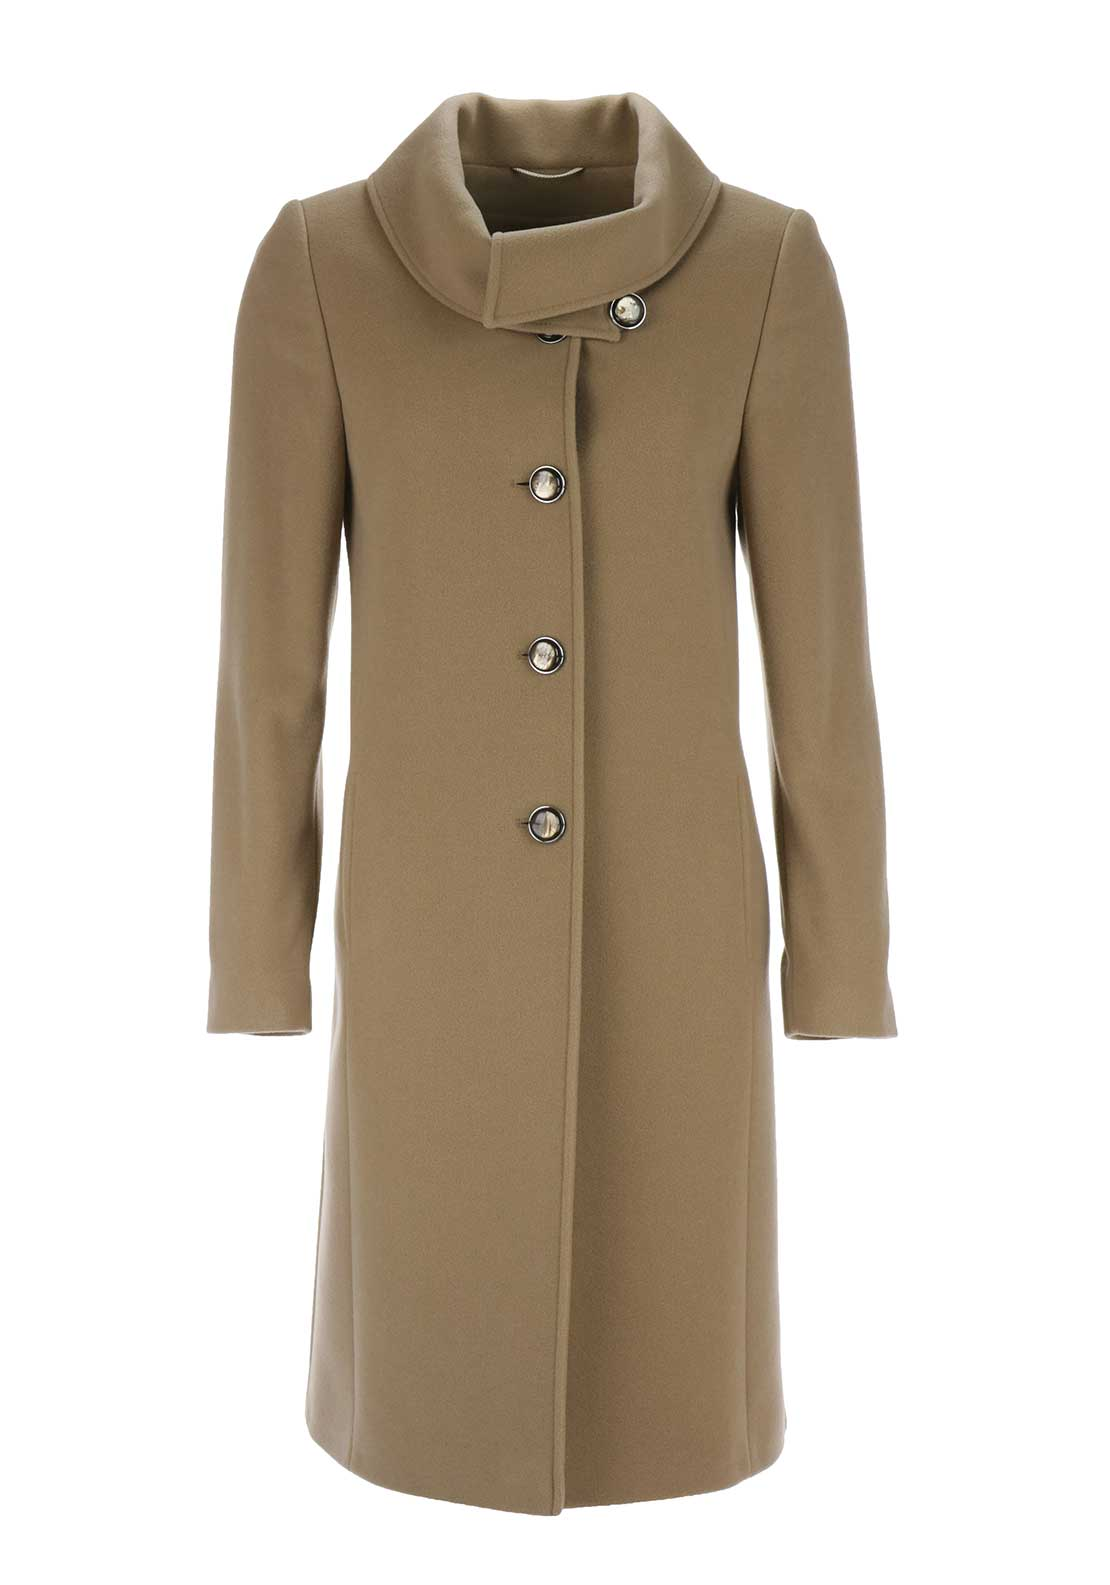 Christina Felix Shawl Collar Wool Coat, Camel